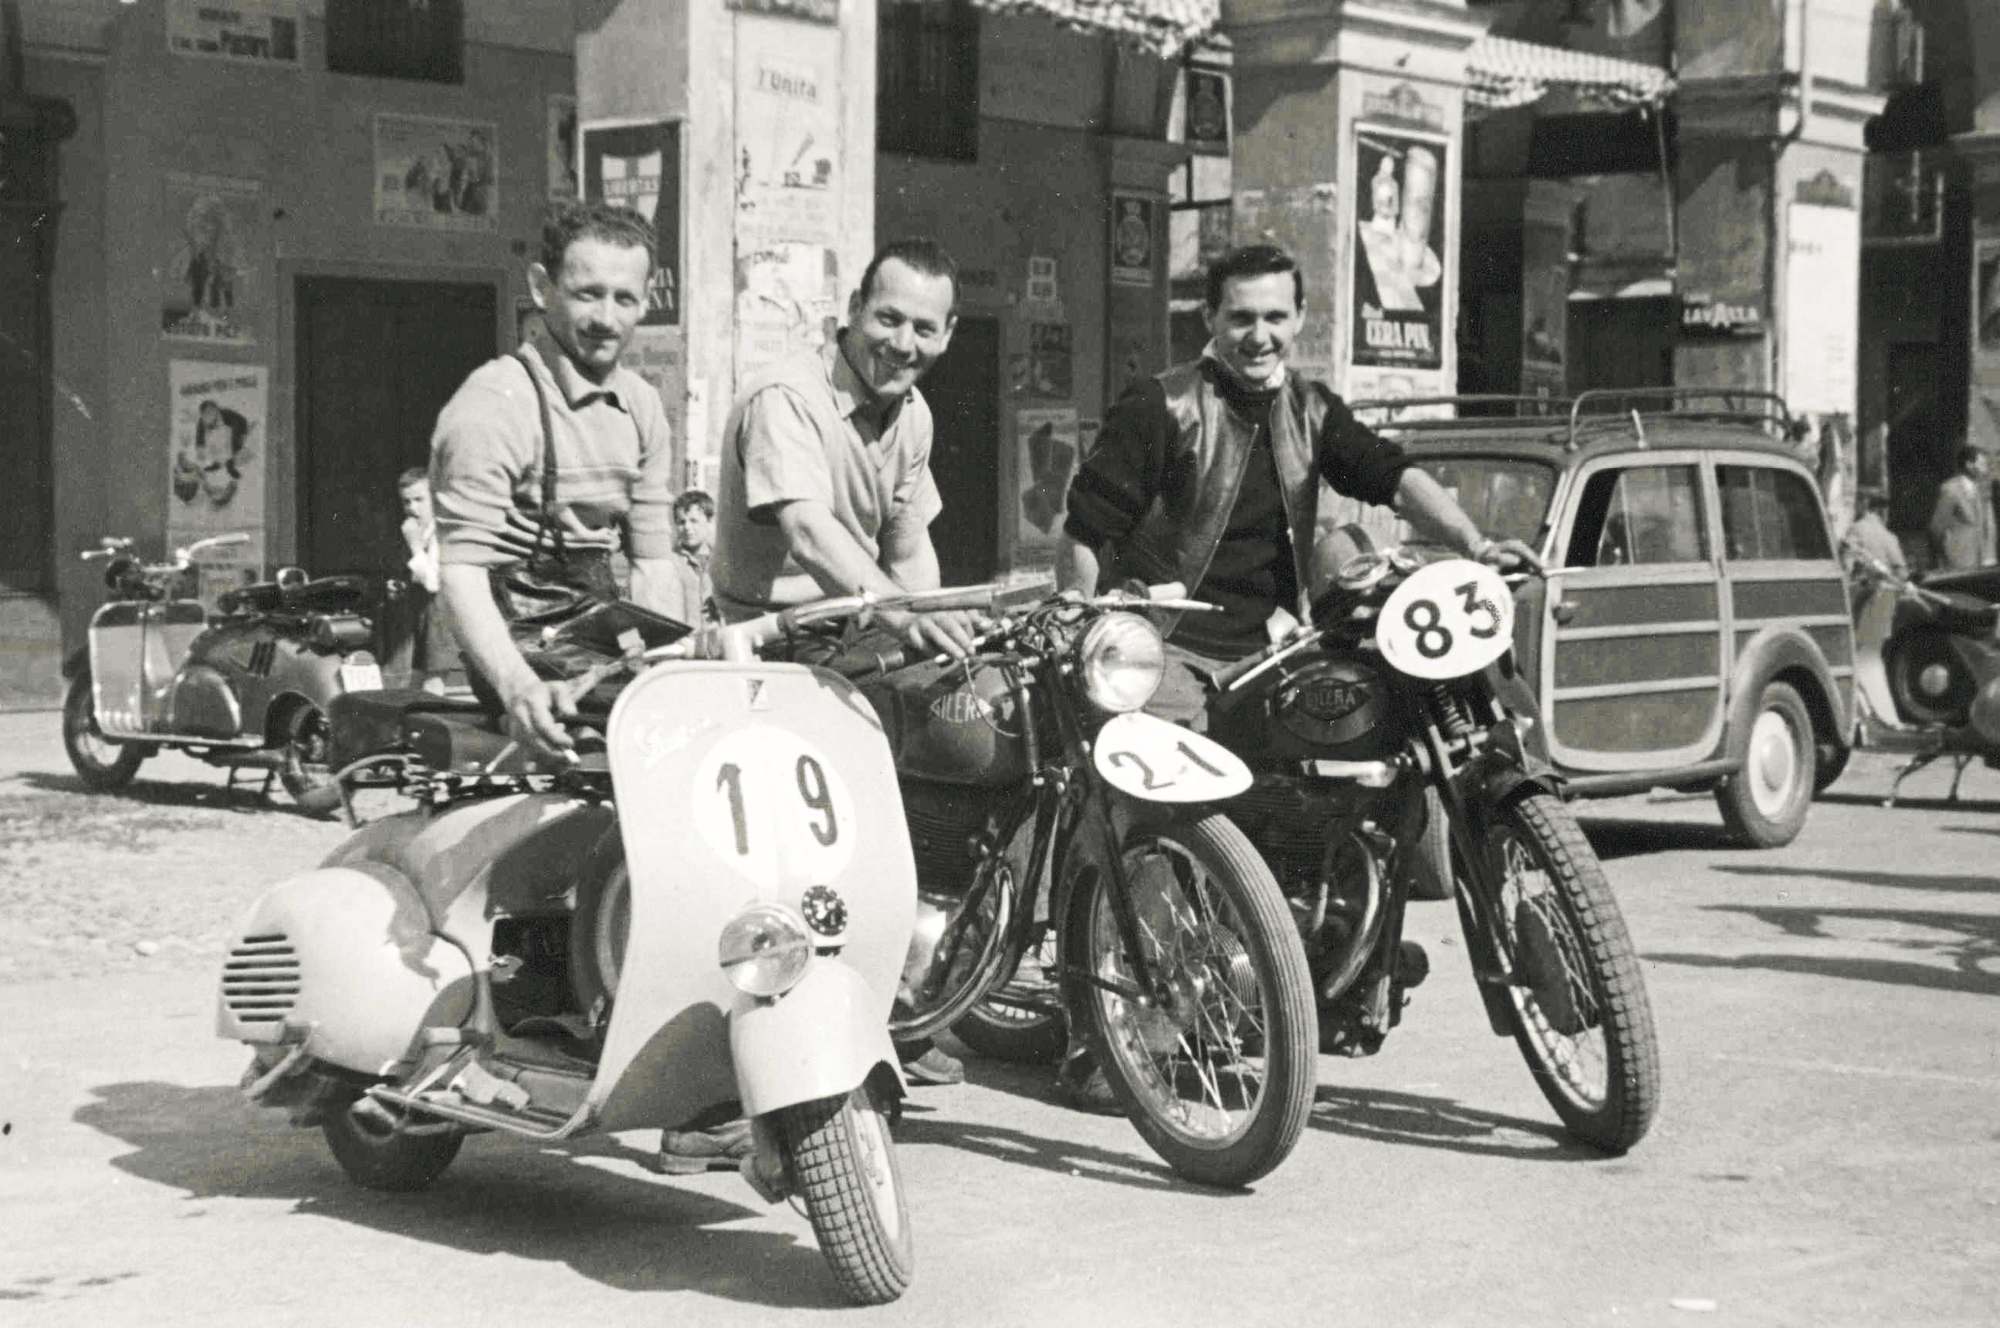 Vespa racers preparing for a rally in 1953